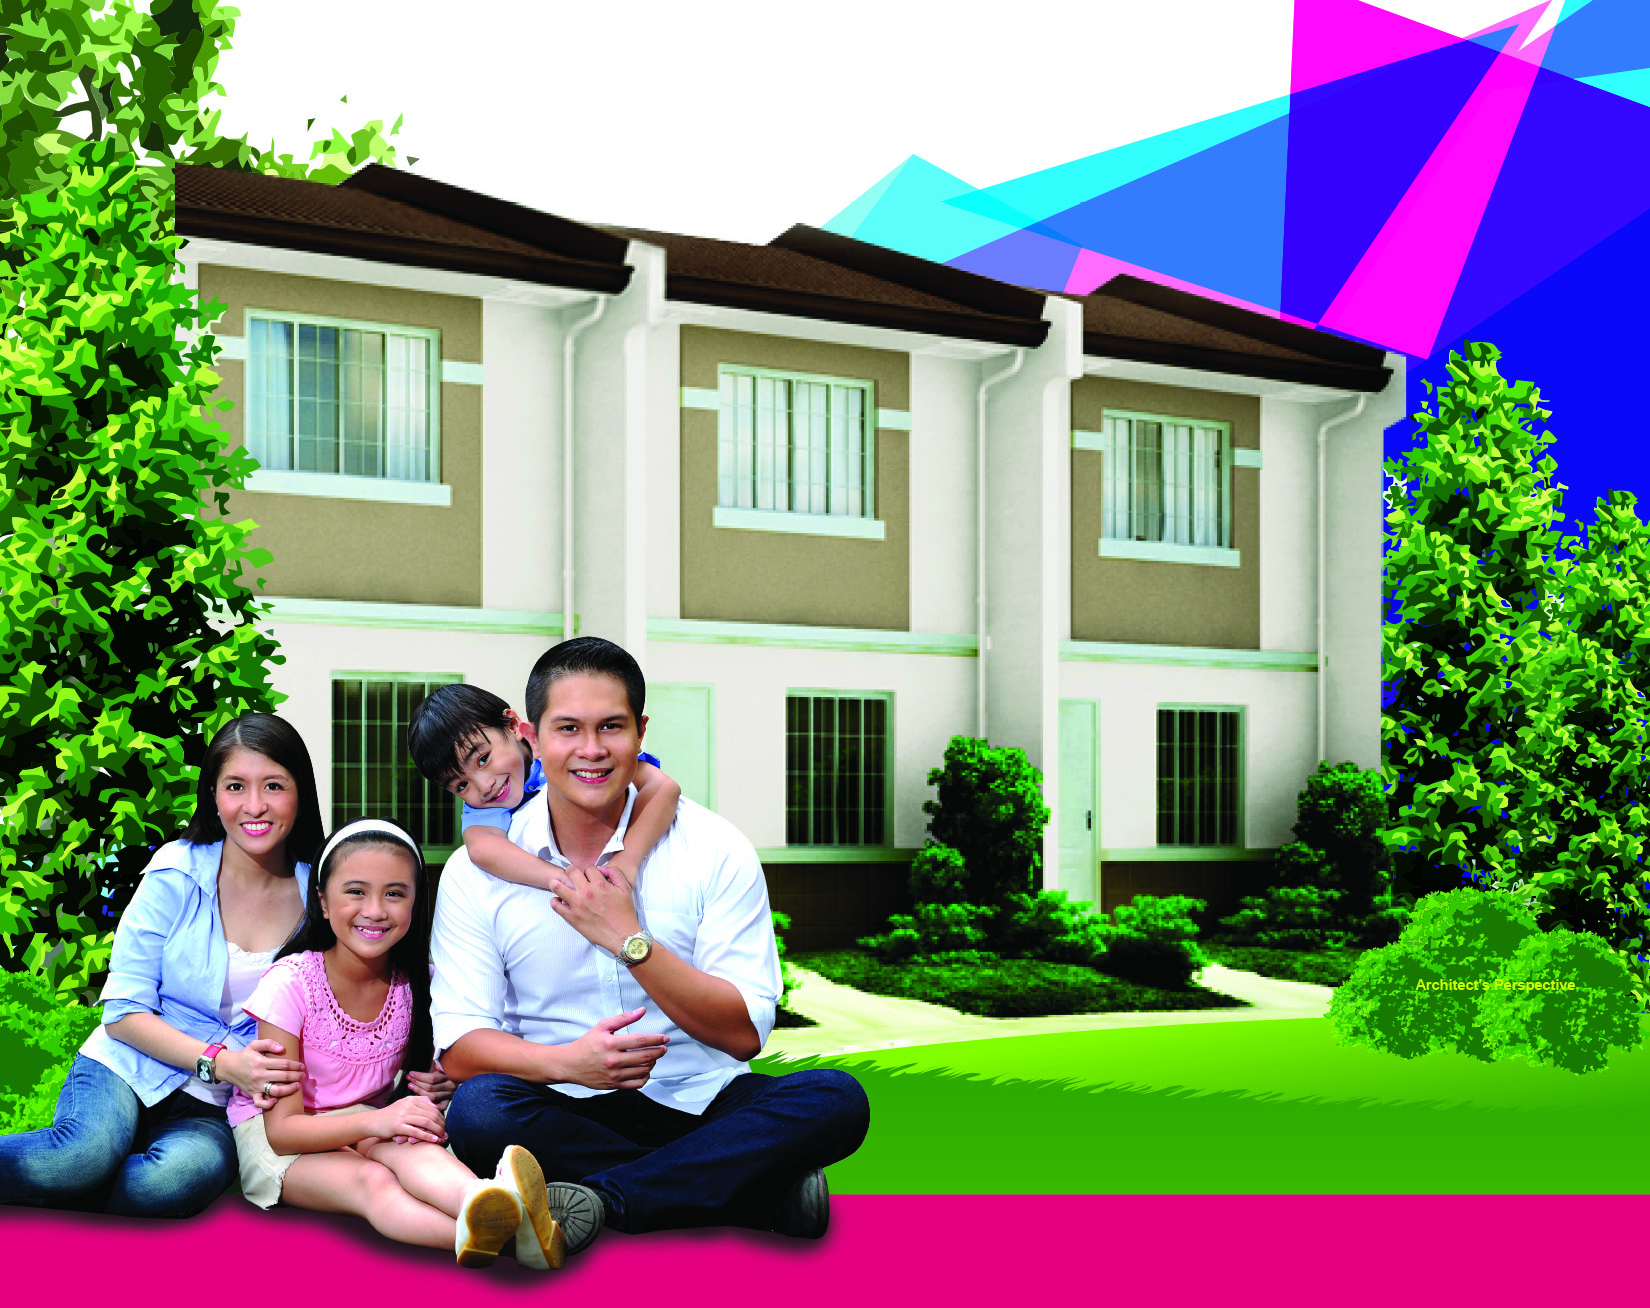 Paragon Village - Pag-ibig Rent to Own Houses for Sale in Trece Martires Cavite